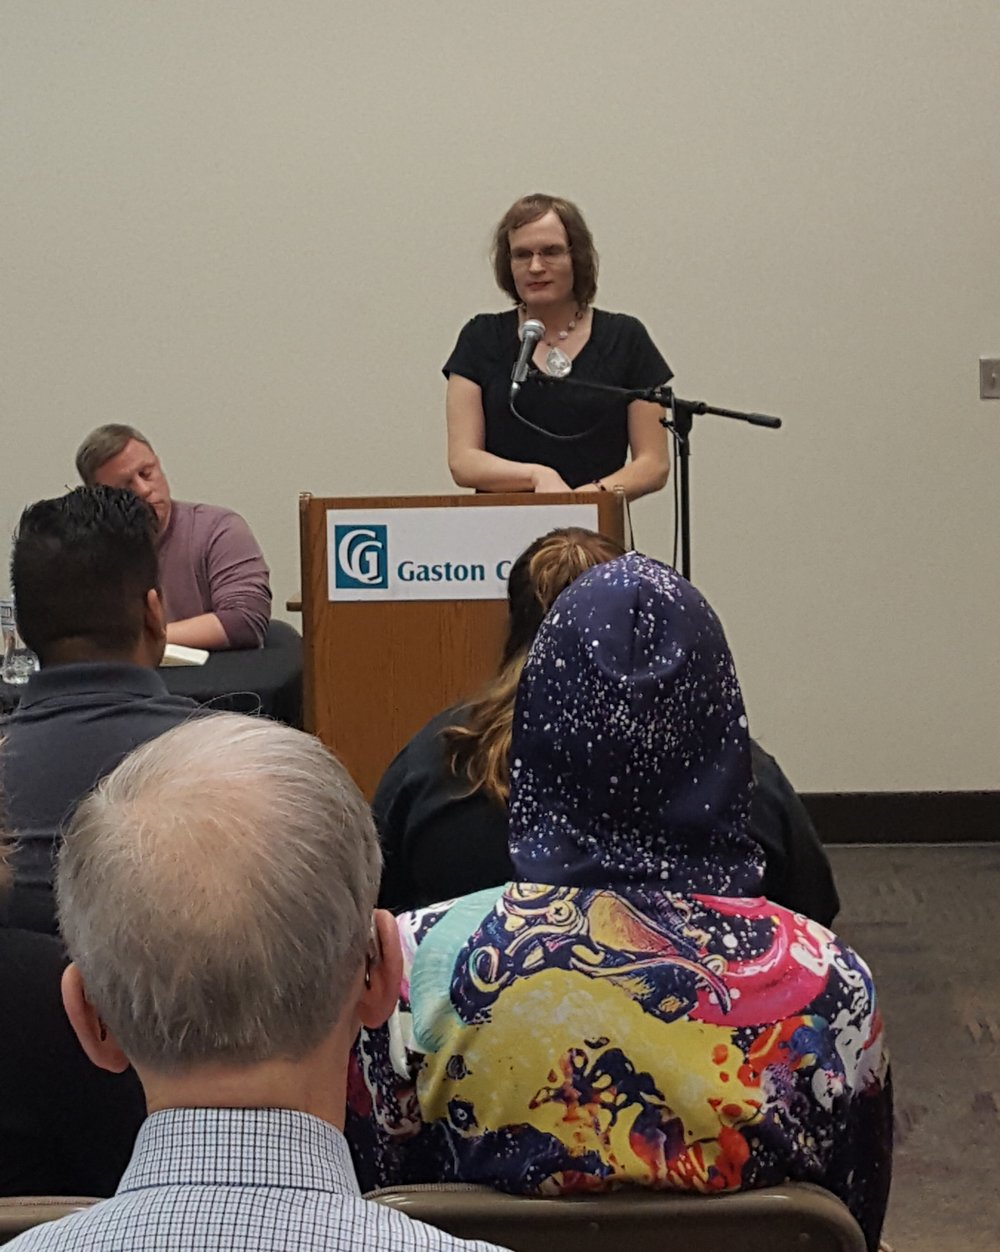 Agape member advocating for Transgender rights during panel discussion at Gaston College